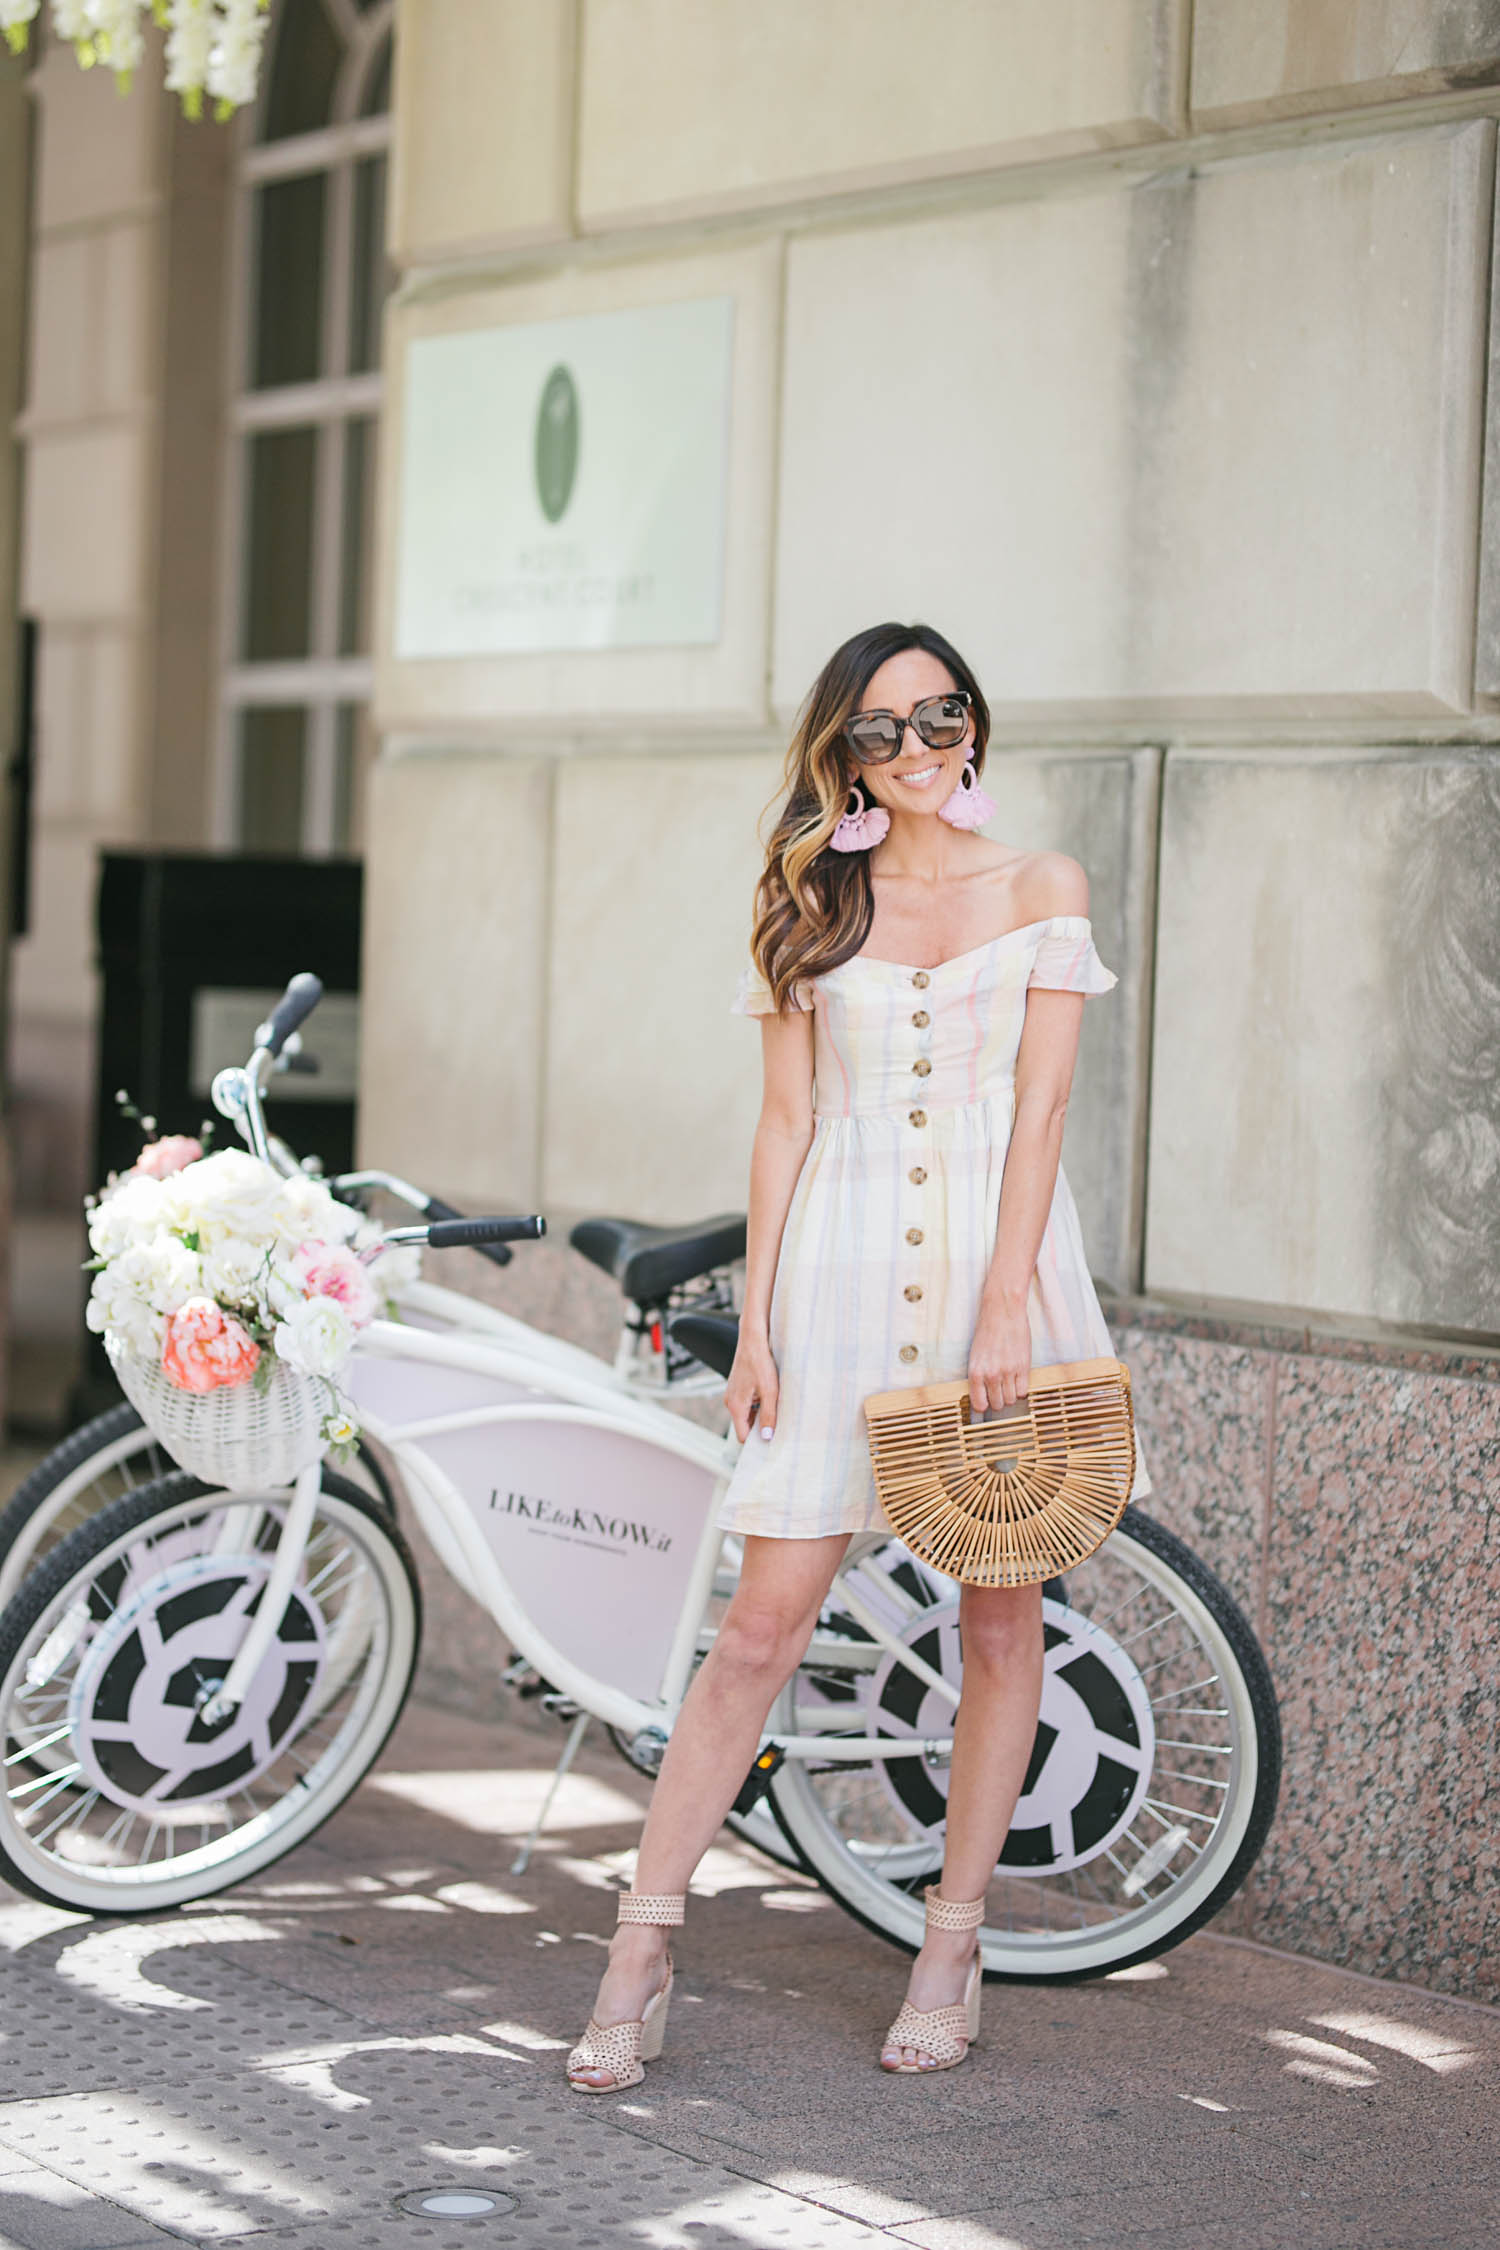 Plaid Dress, Urban Outffiters, rewardStyle Conference, Statement Earrings, Baublebar, Cult Gaia, Gucci Sunglasses, Bike